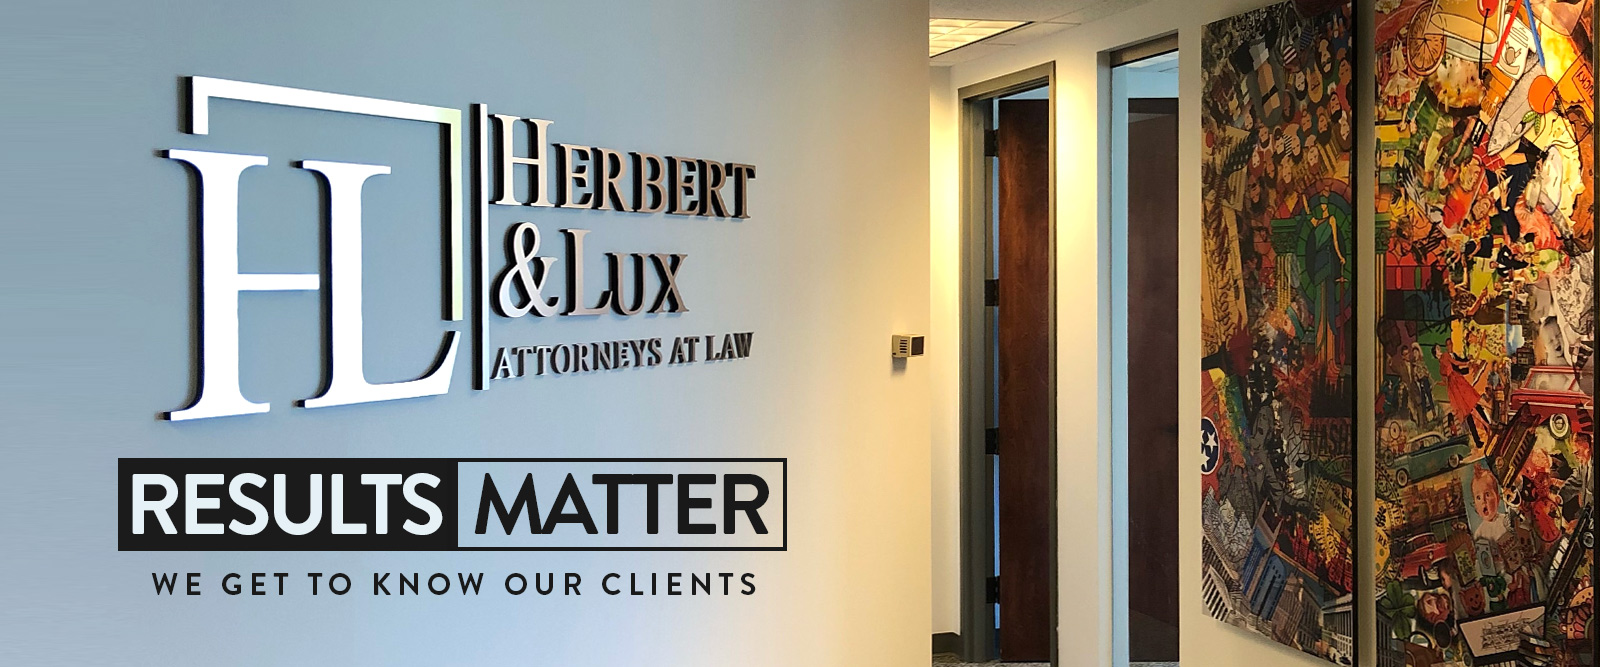 Herbert-and-lux-attorneys-at-law